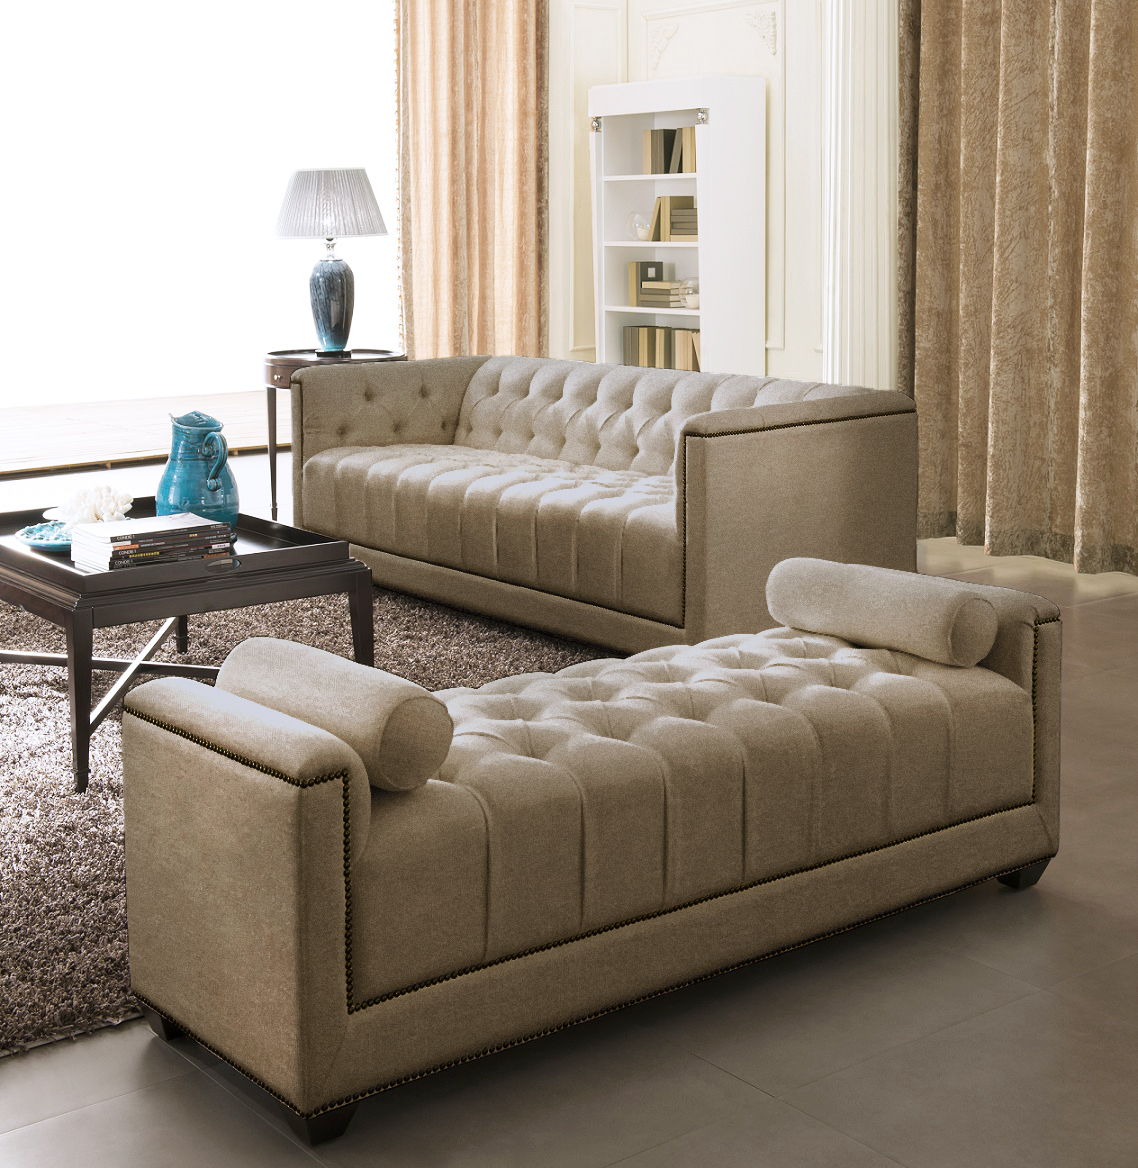 Sofa Sets In Living Room Modern Sofa Set Living Room Sofa Set Eden Moki